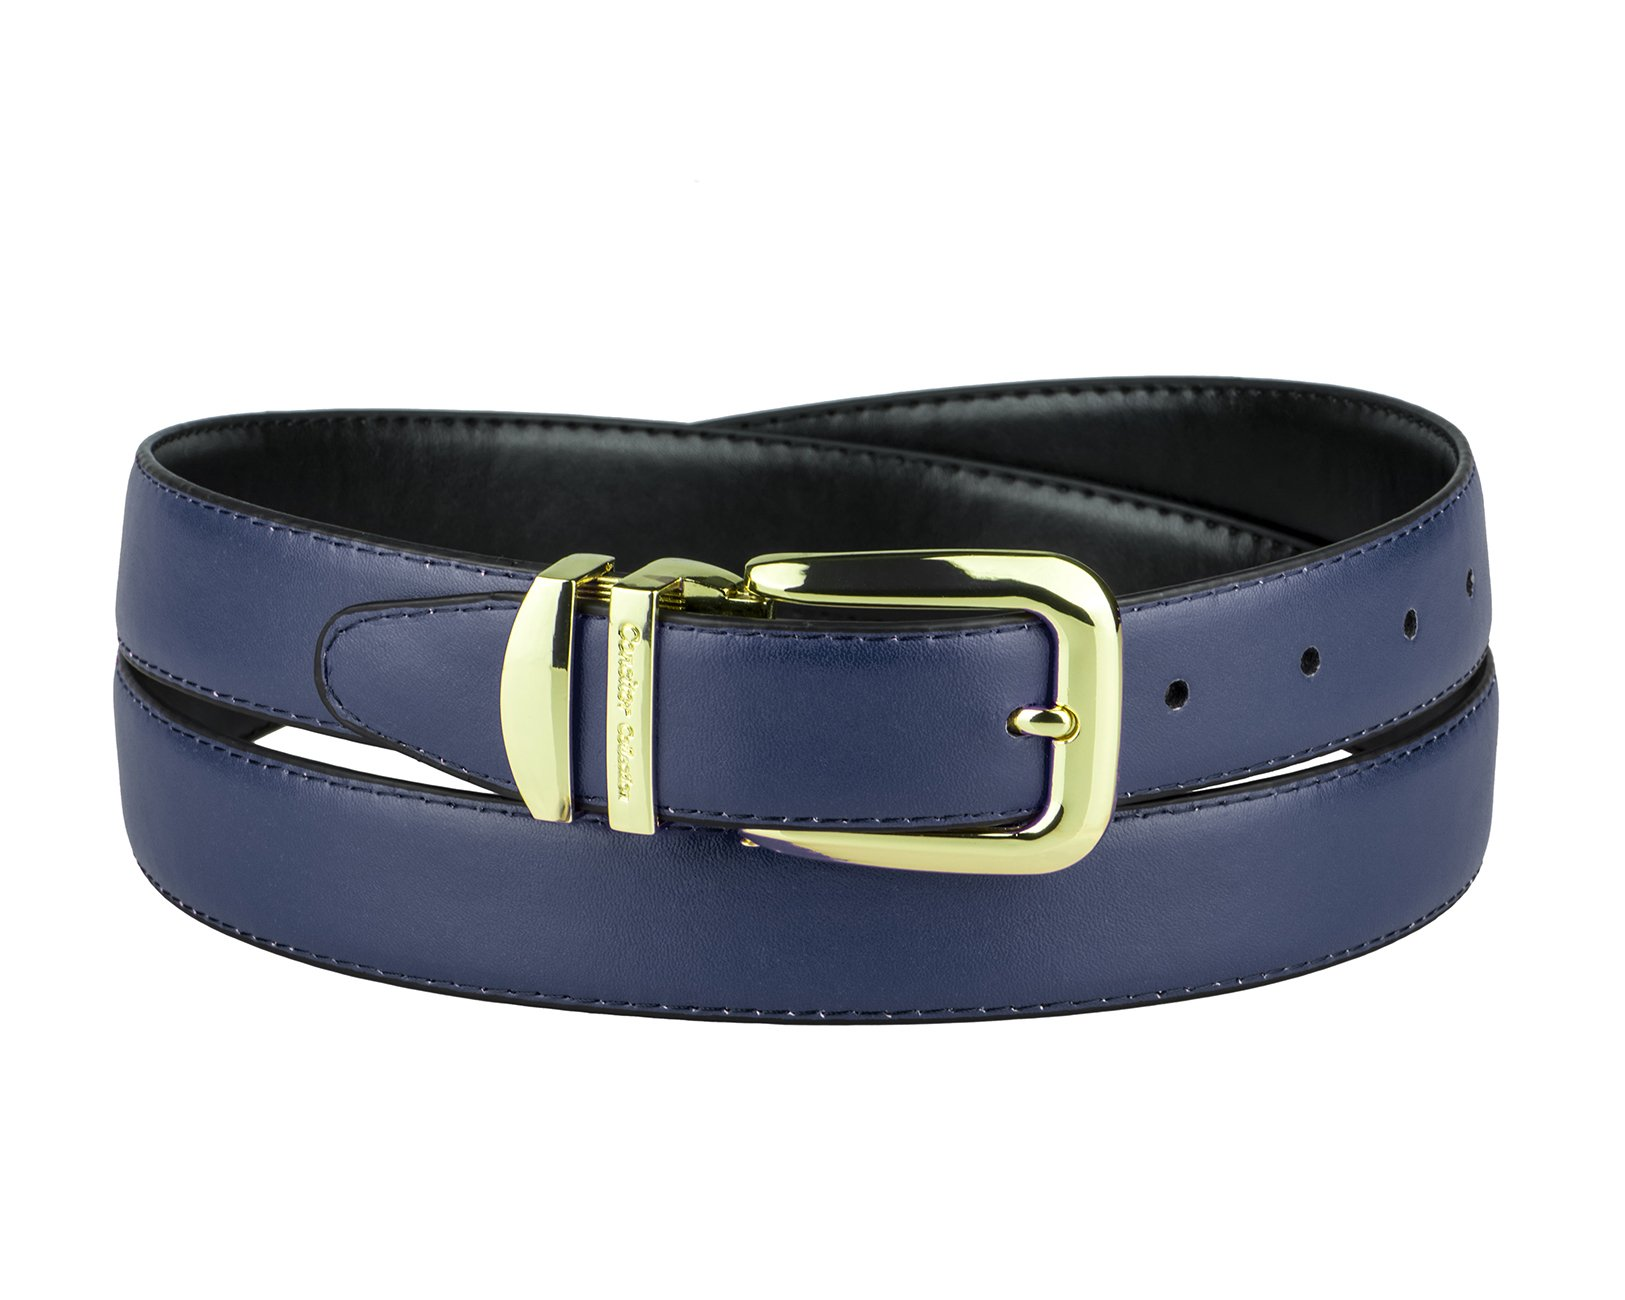 CONCITOR Reversible Belt NAVY BLUE & Black Bonded Leather Gold-Tone Buckle 44